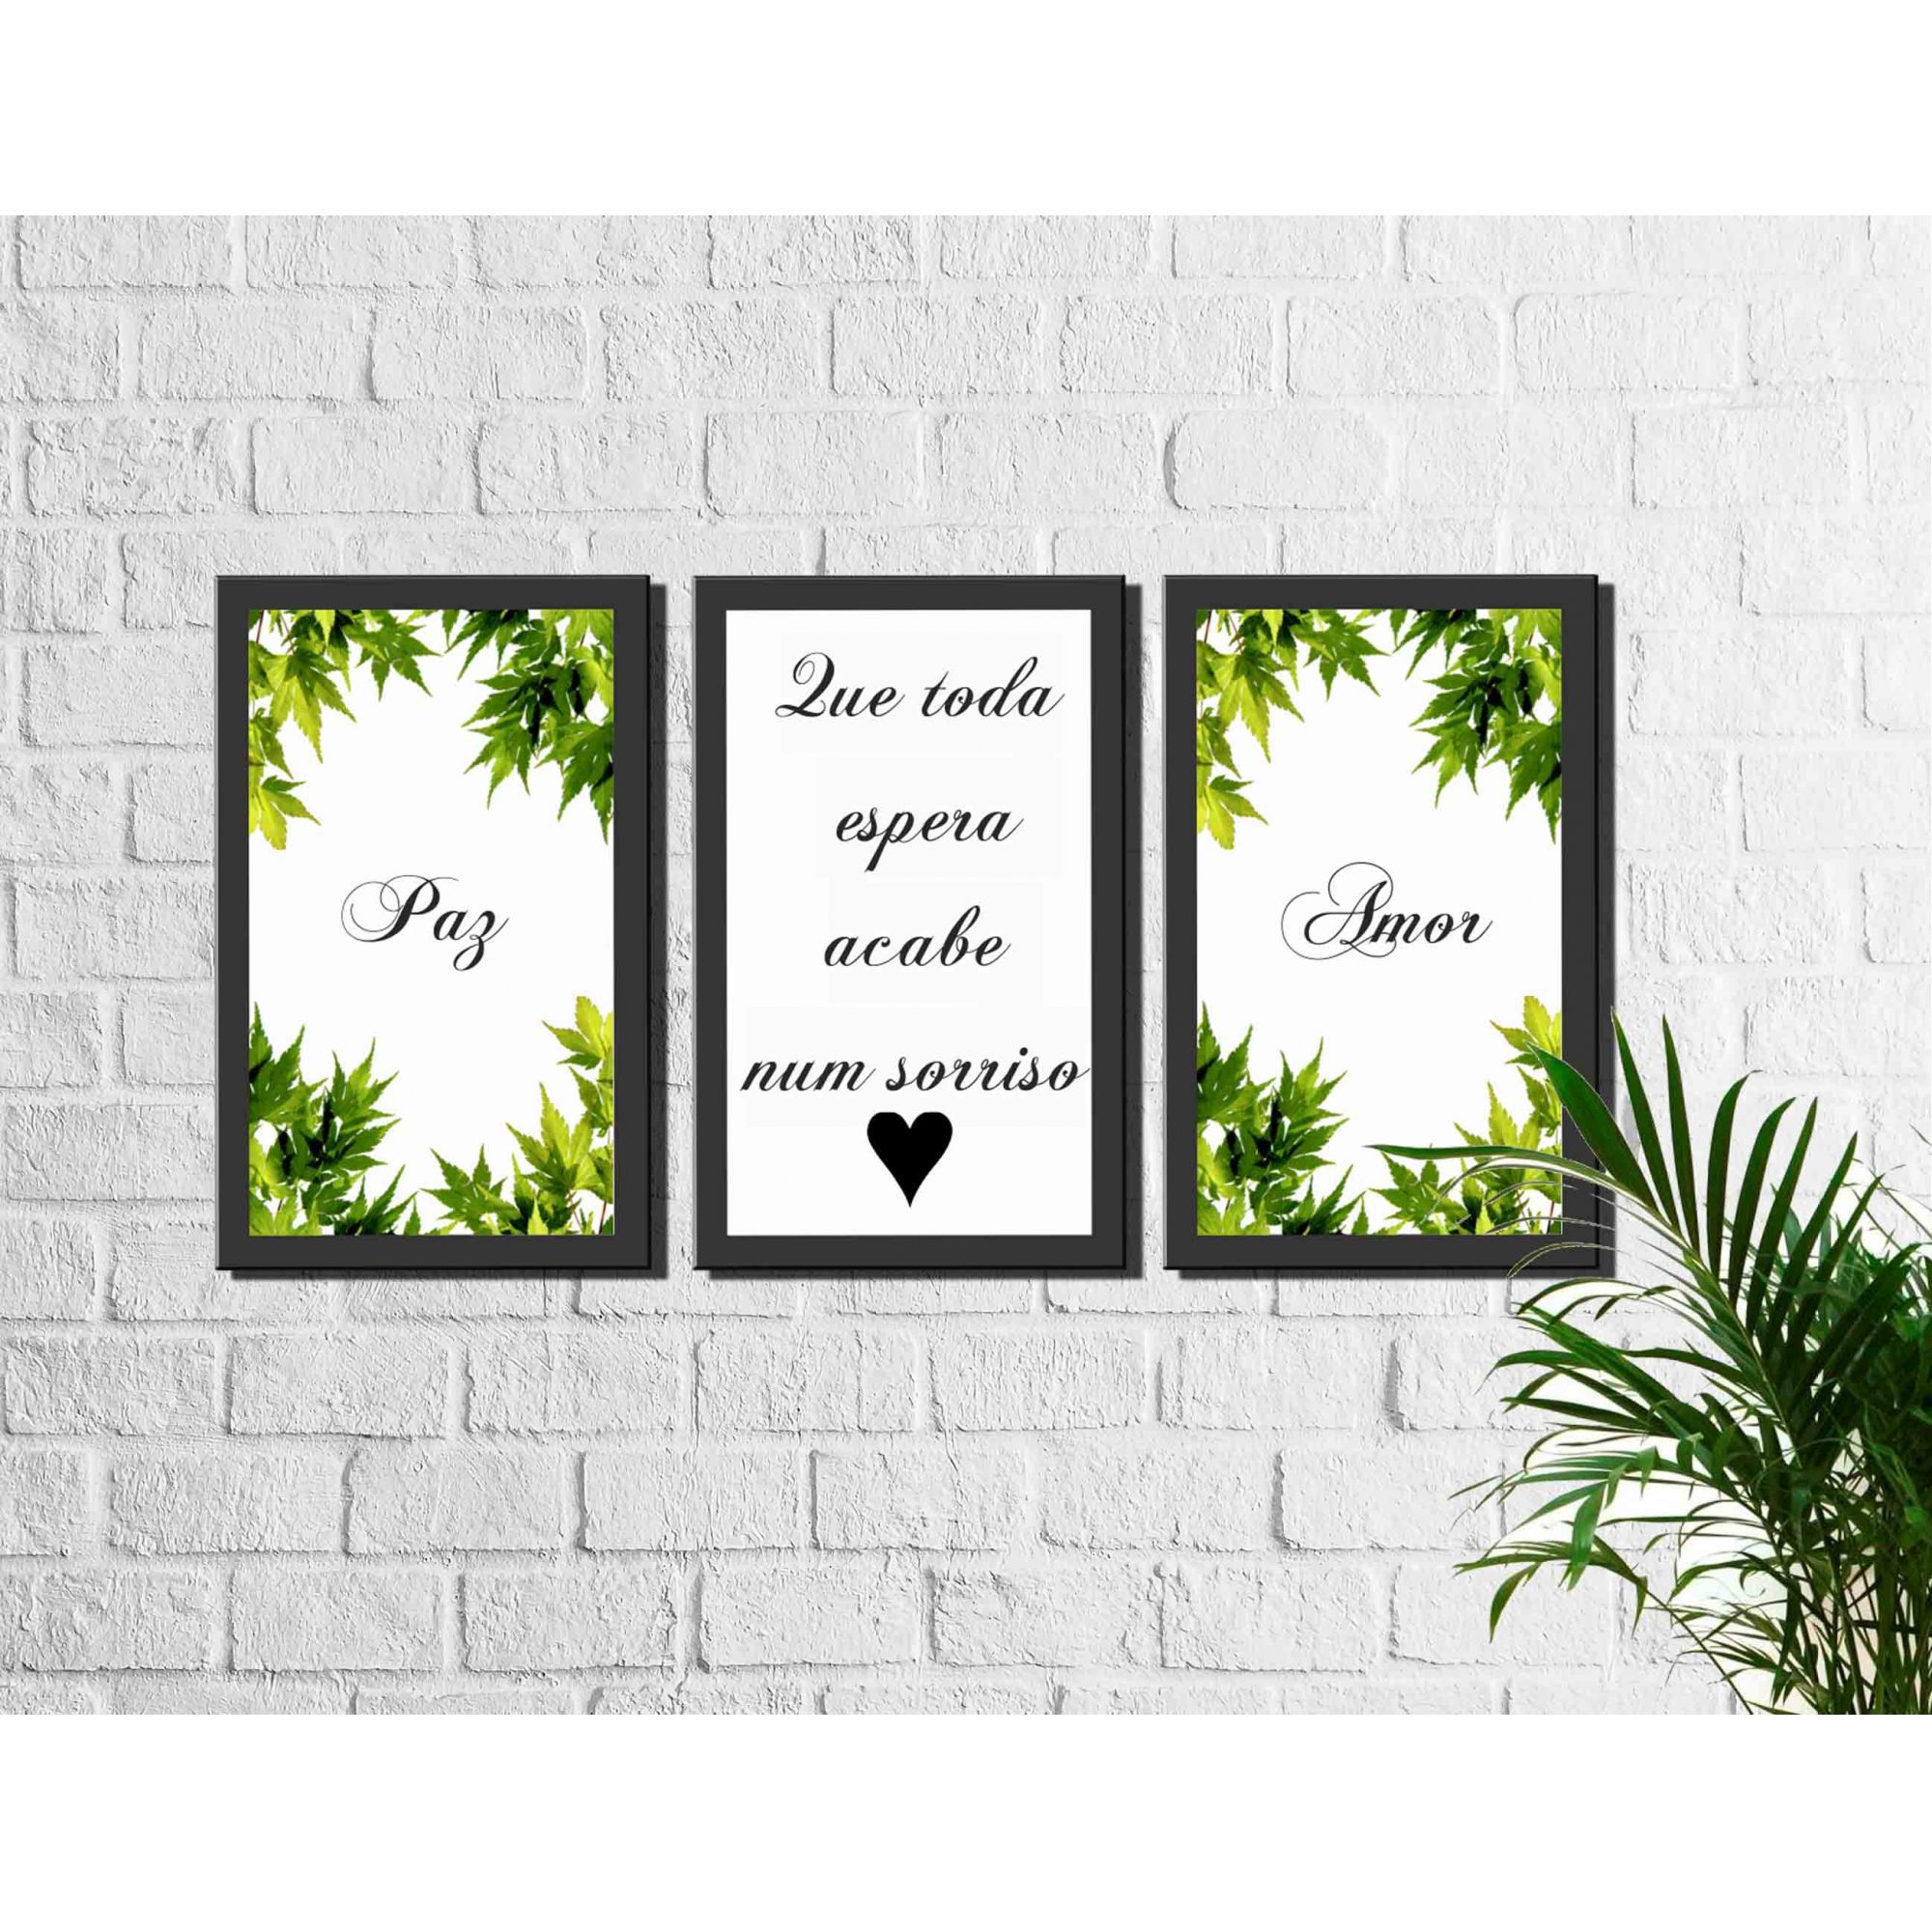 Kit 3 Quadros Decorativos Frase Amor Paz